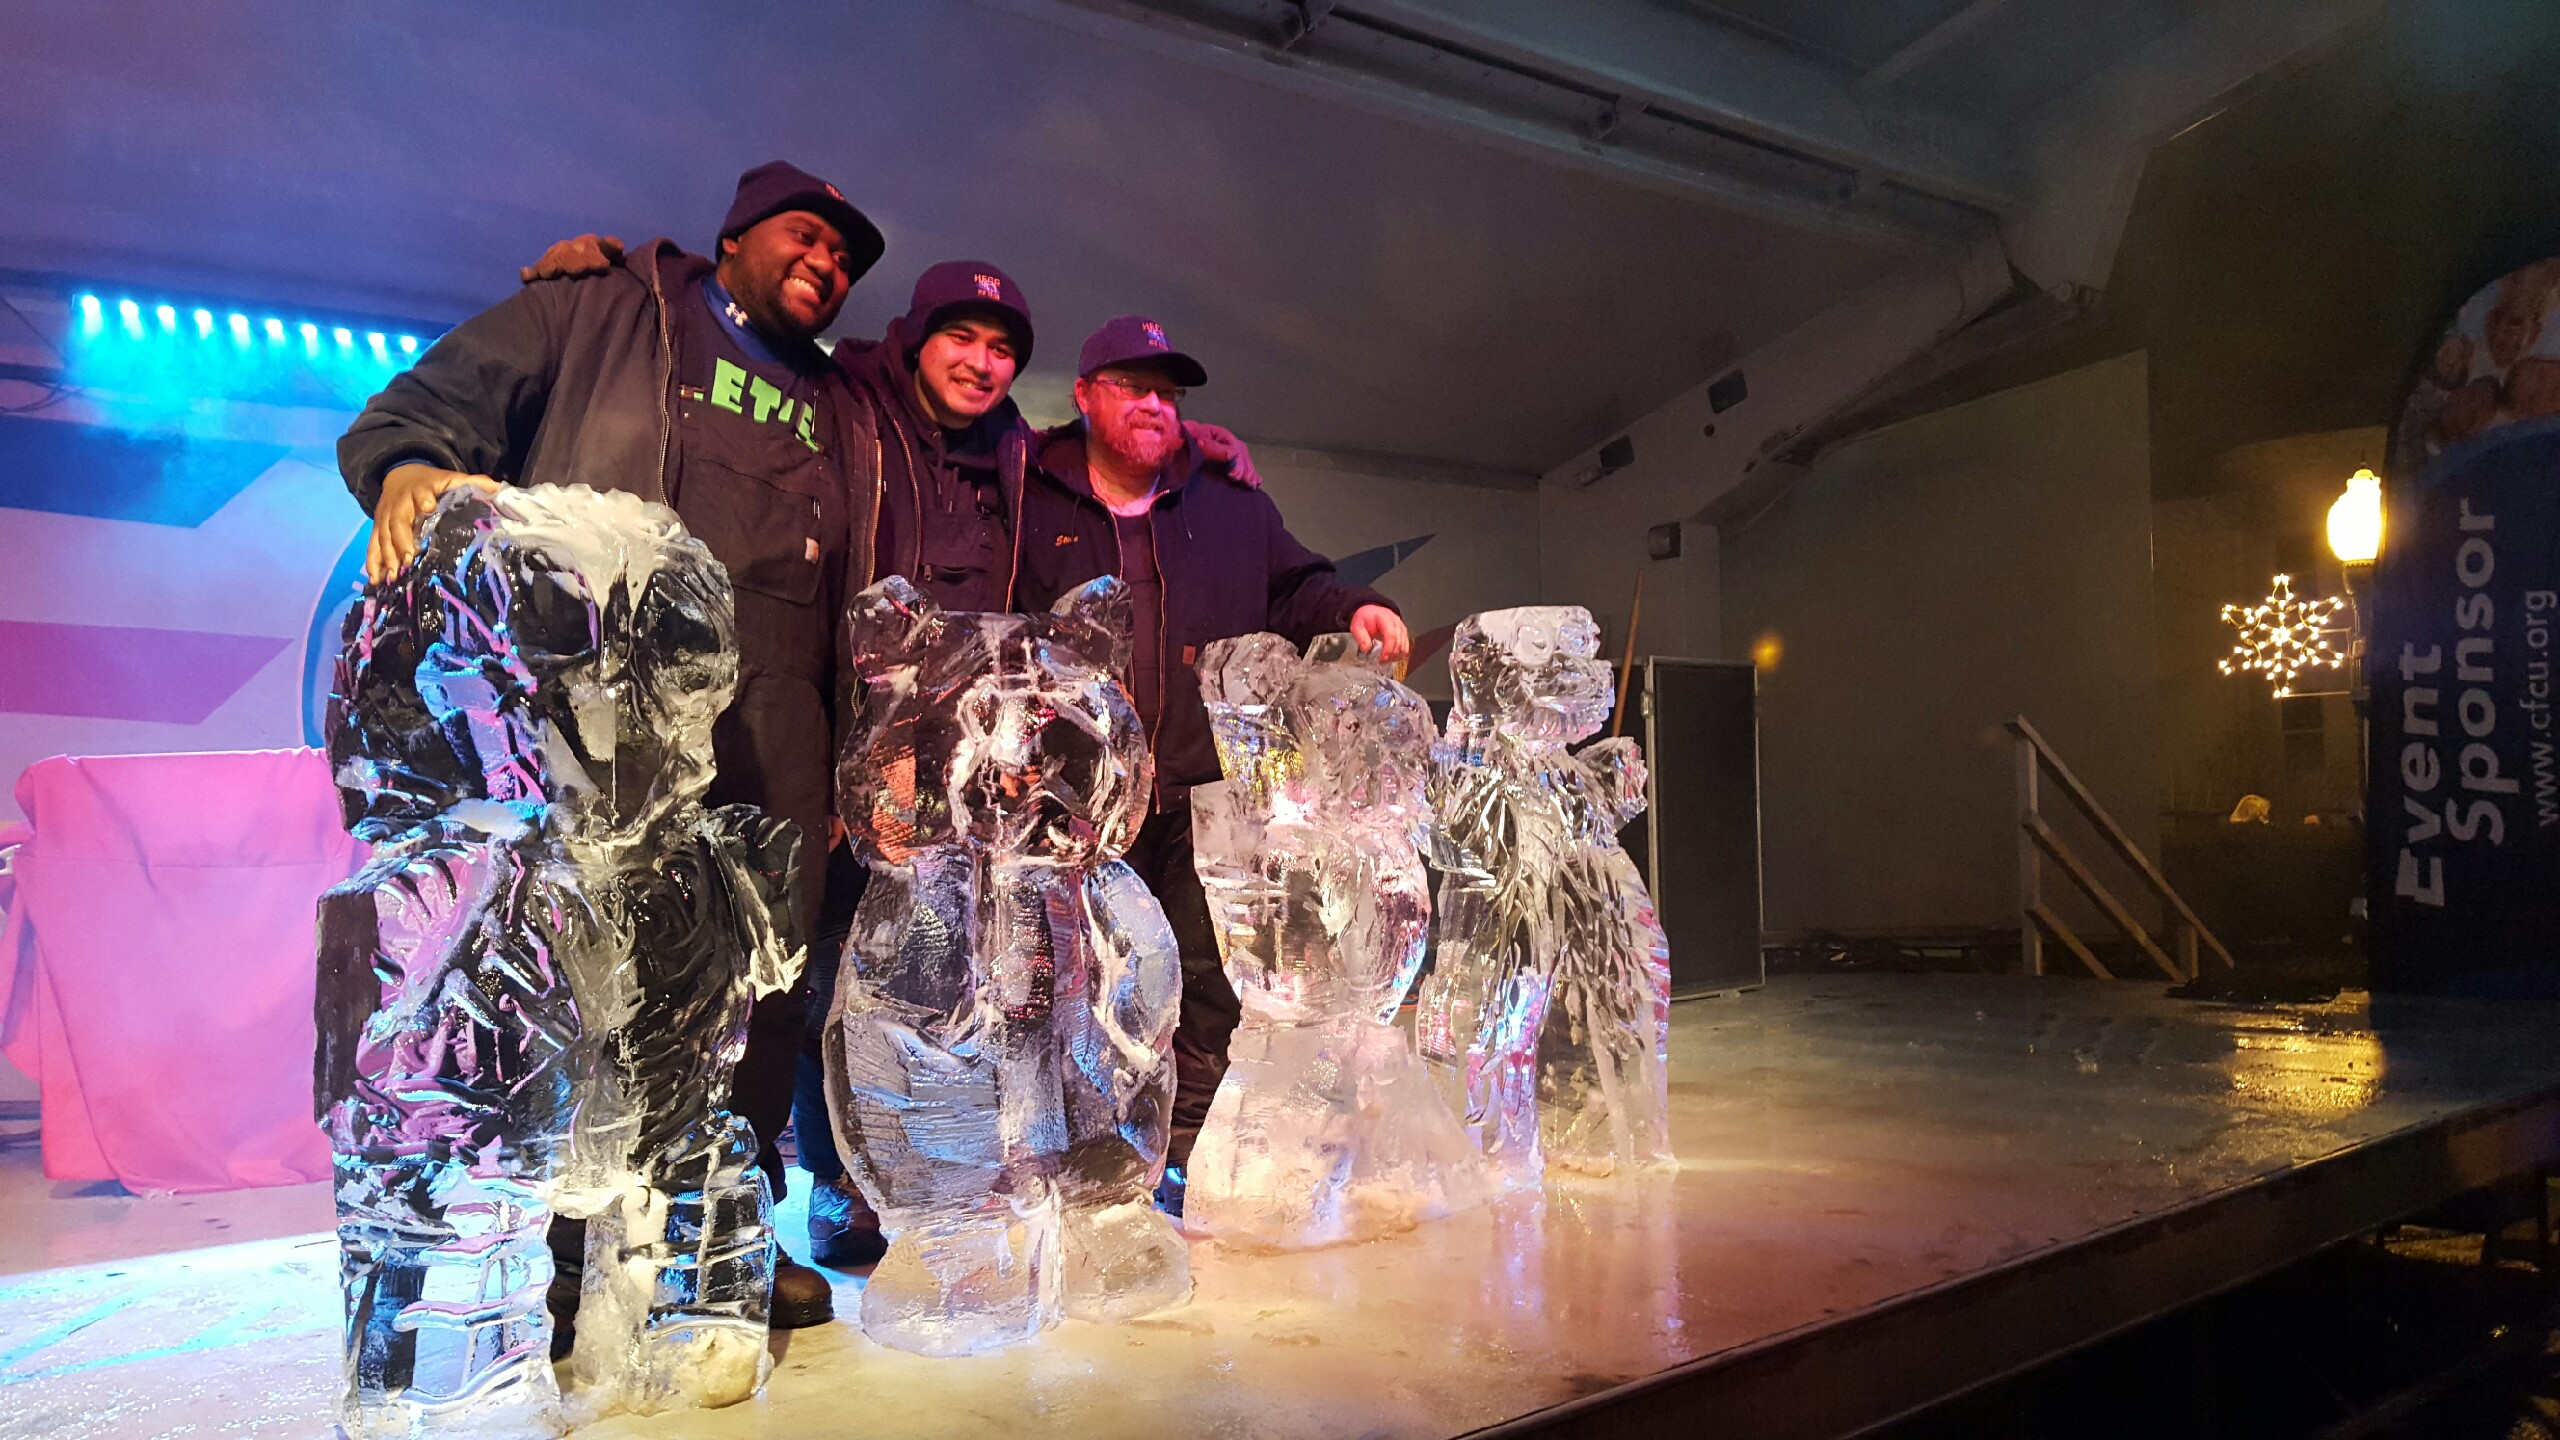 Ice carving club